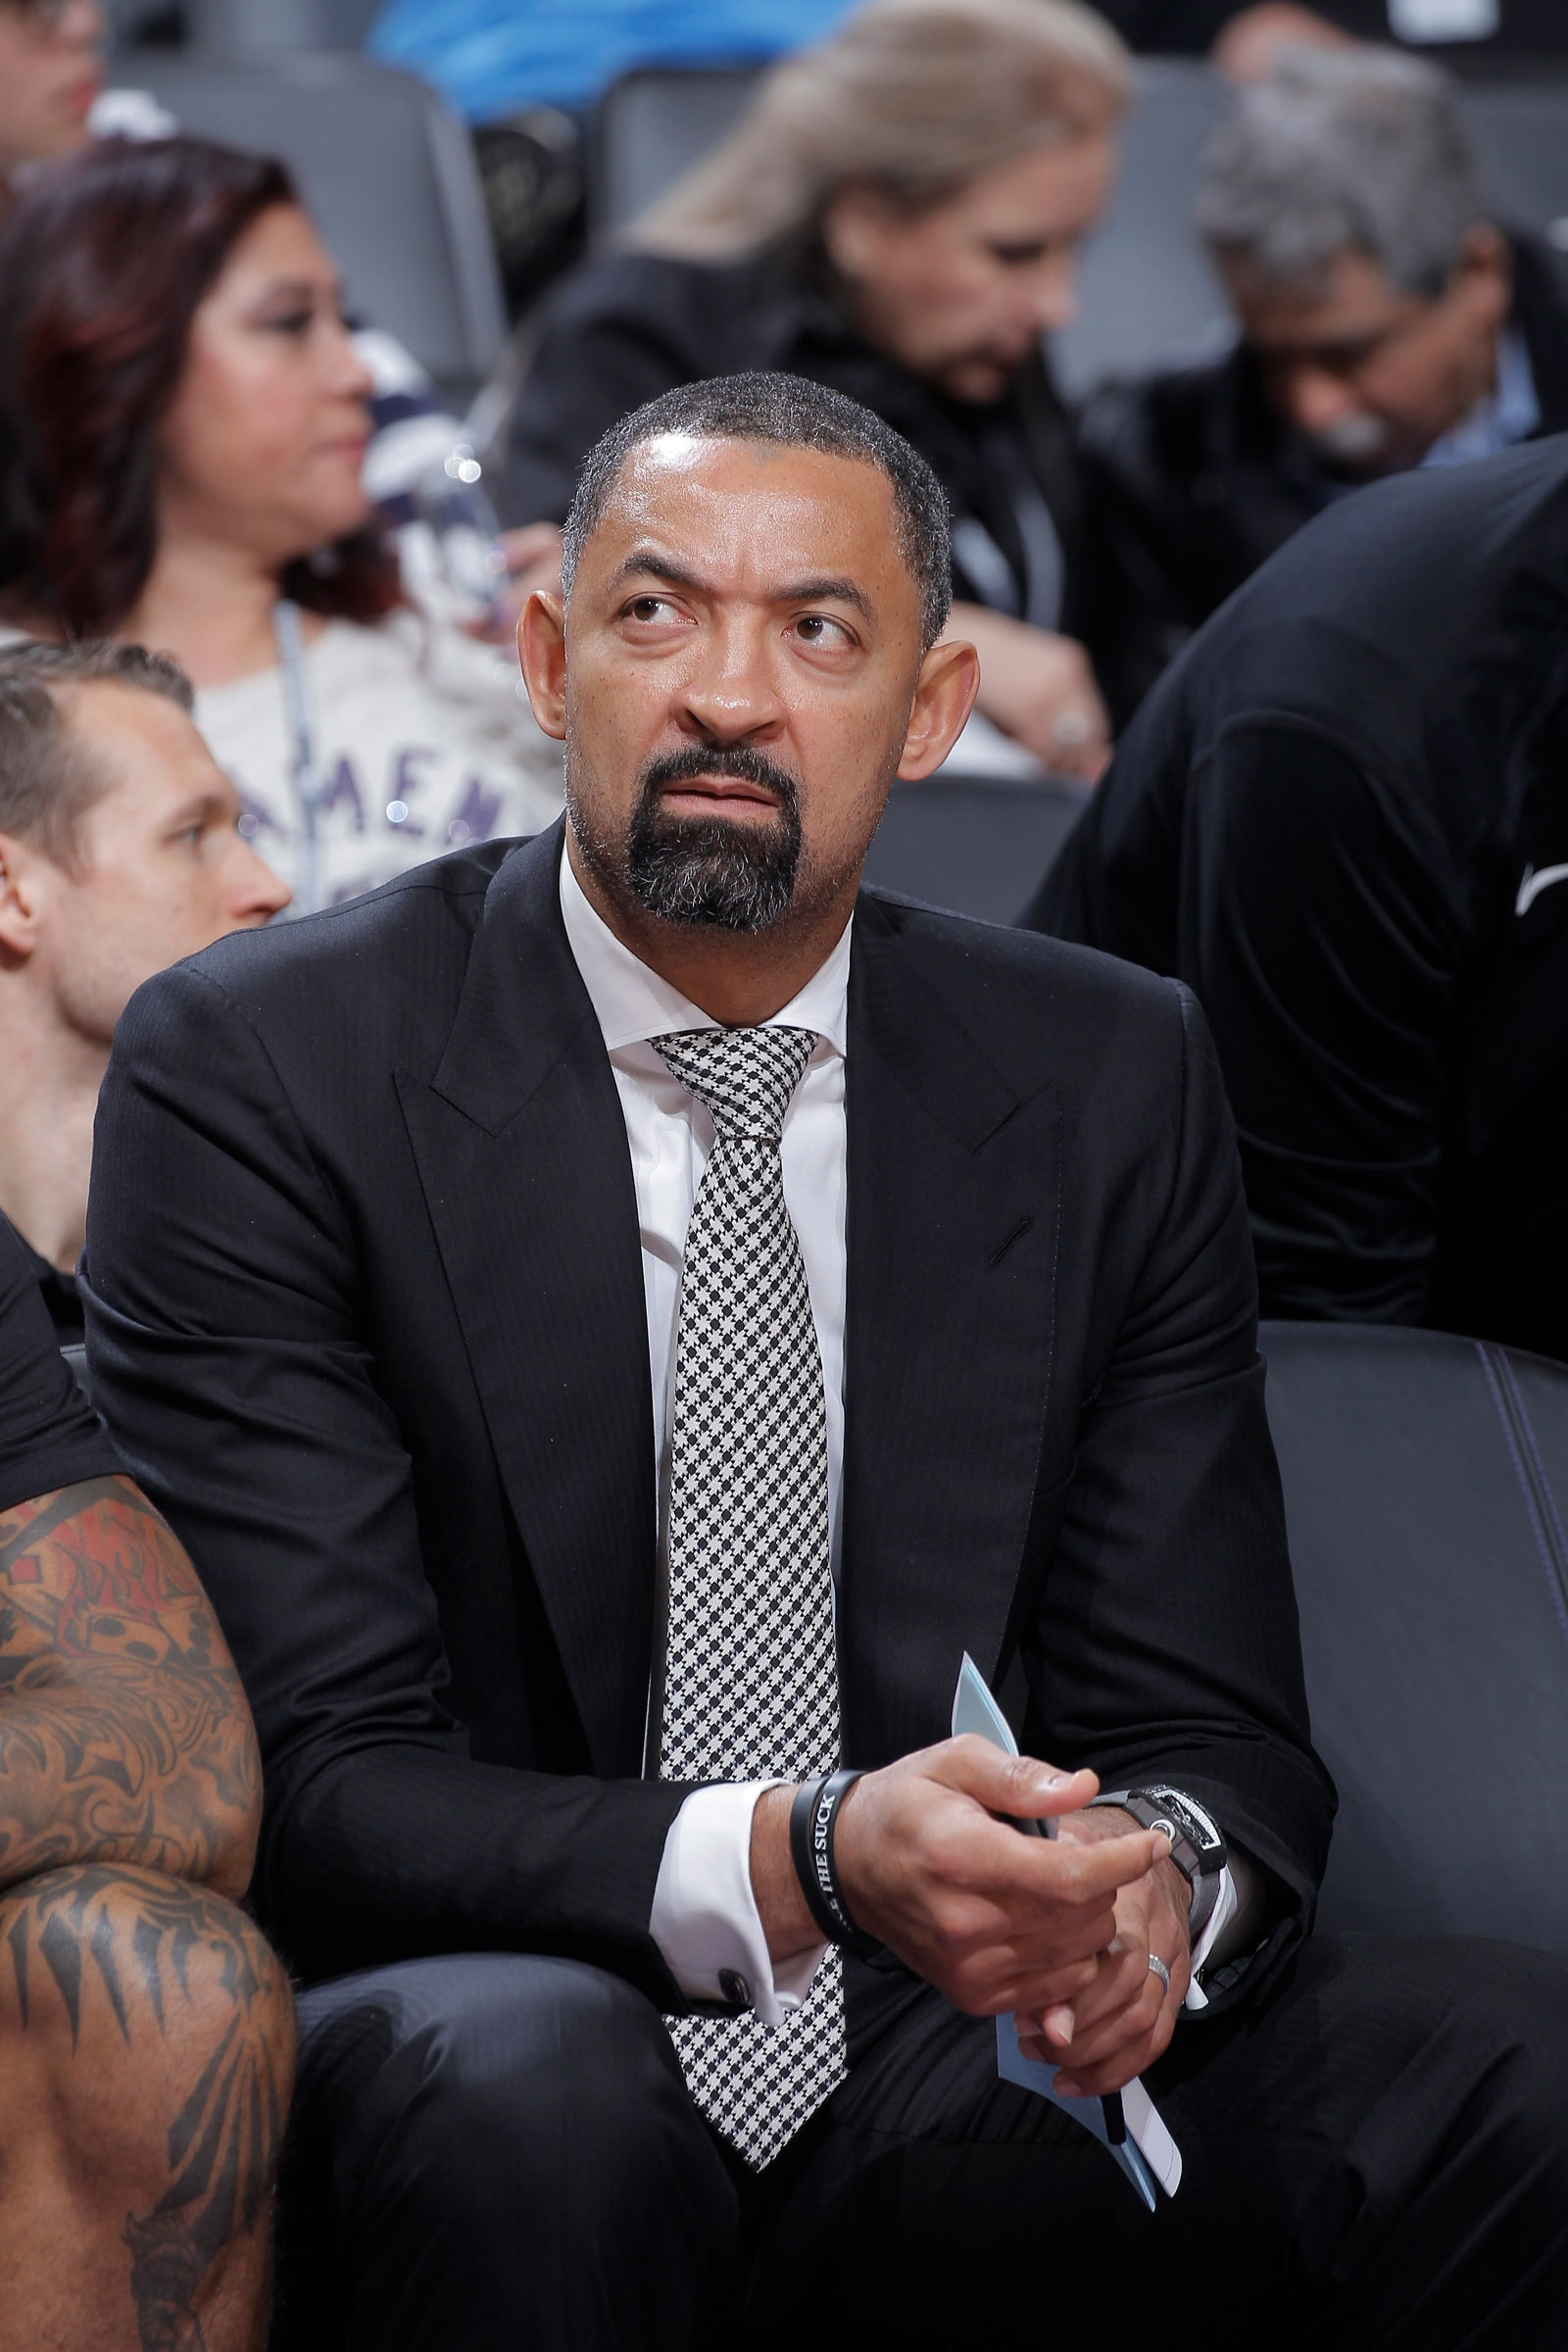 Assistant coach juwan Howard of the Miami Heat looks on during the game against the Sacramento Kings on February 8, 2019 at Golden 1 Center in Sacramento, California.